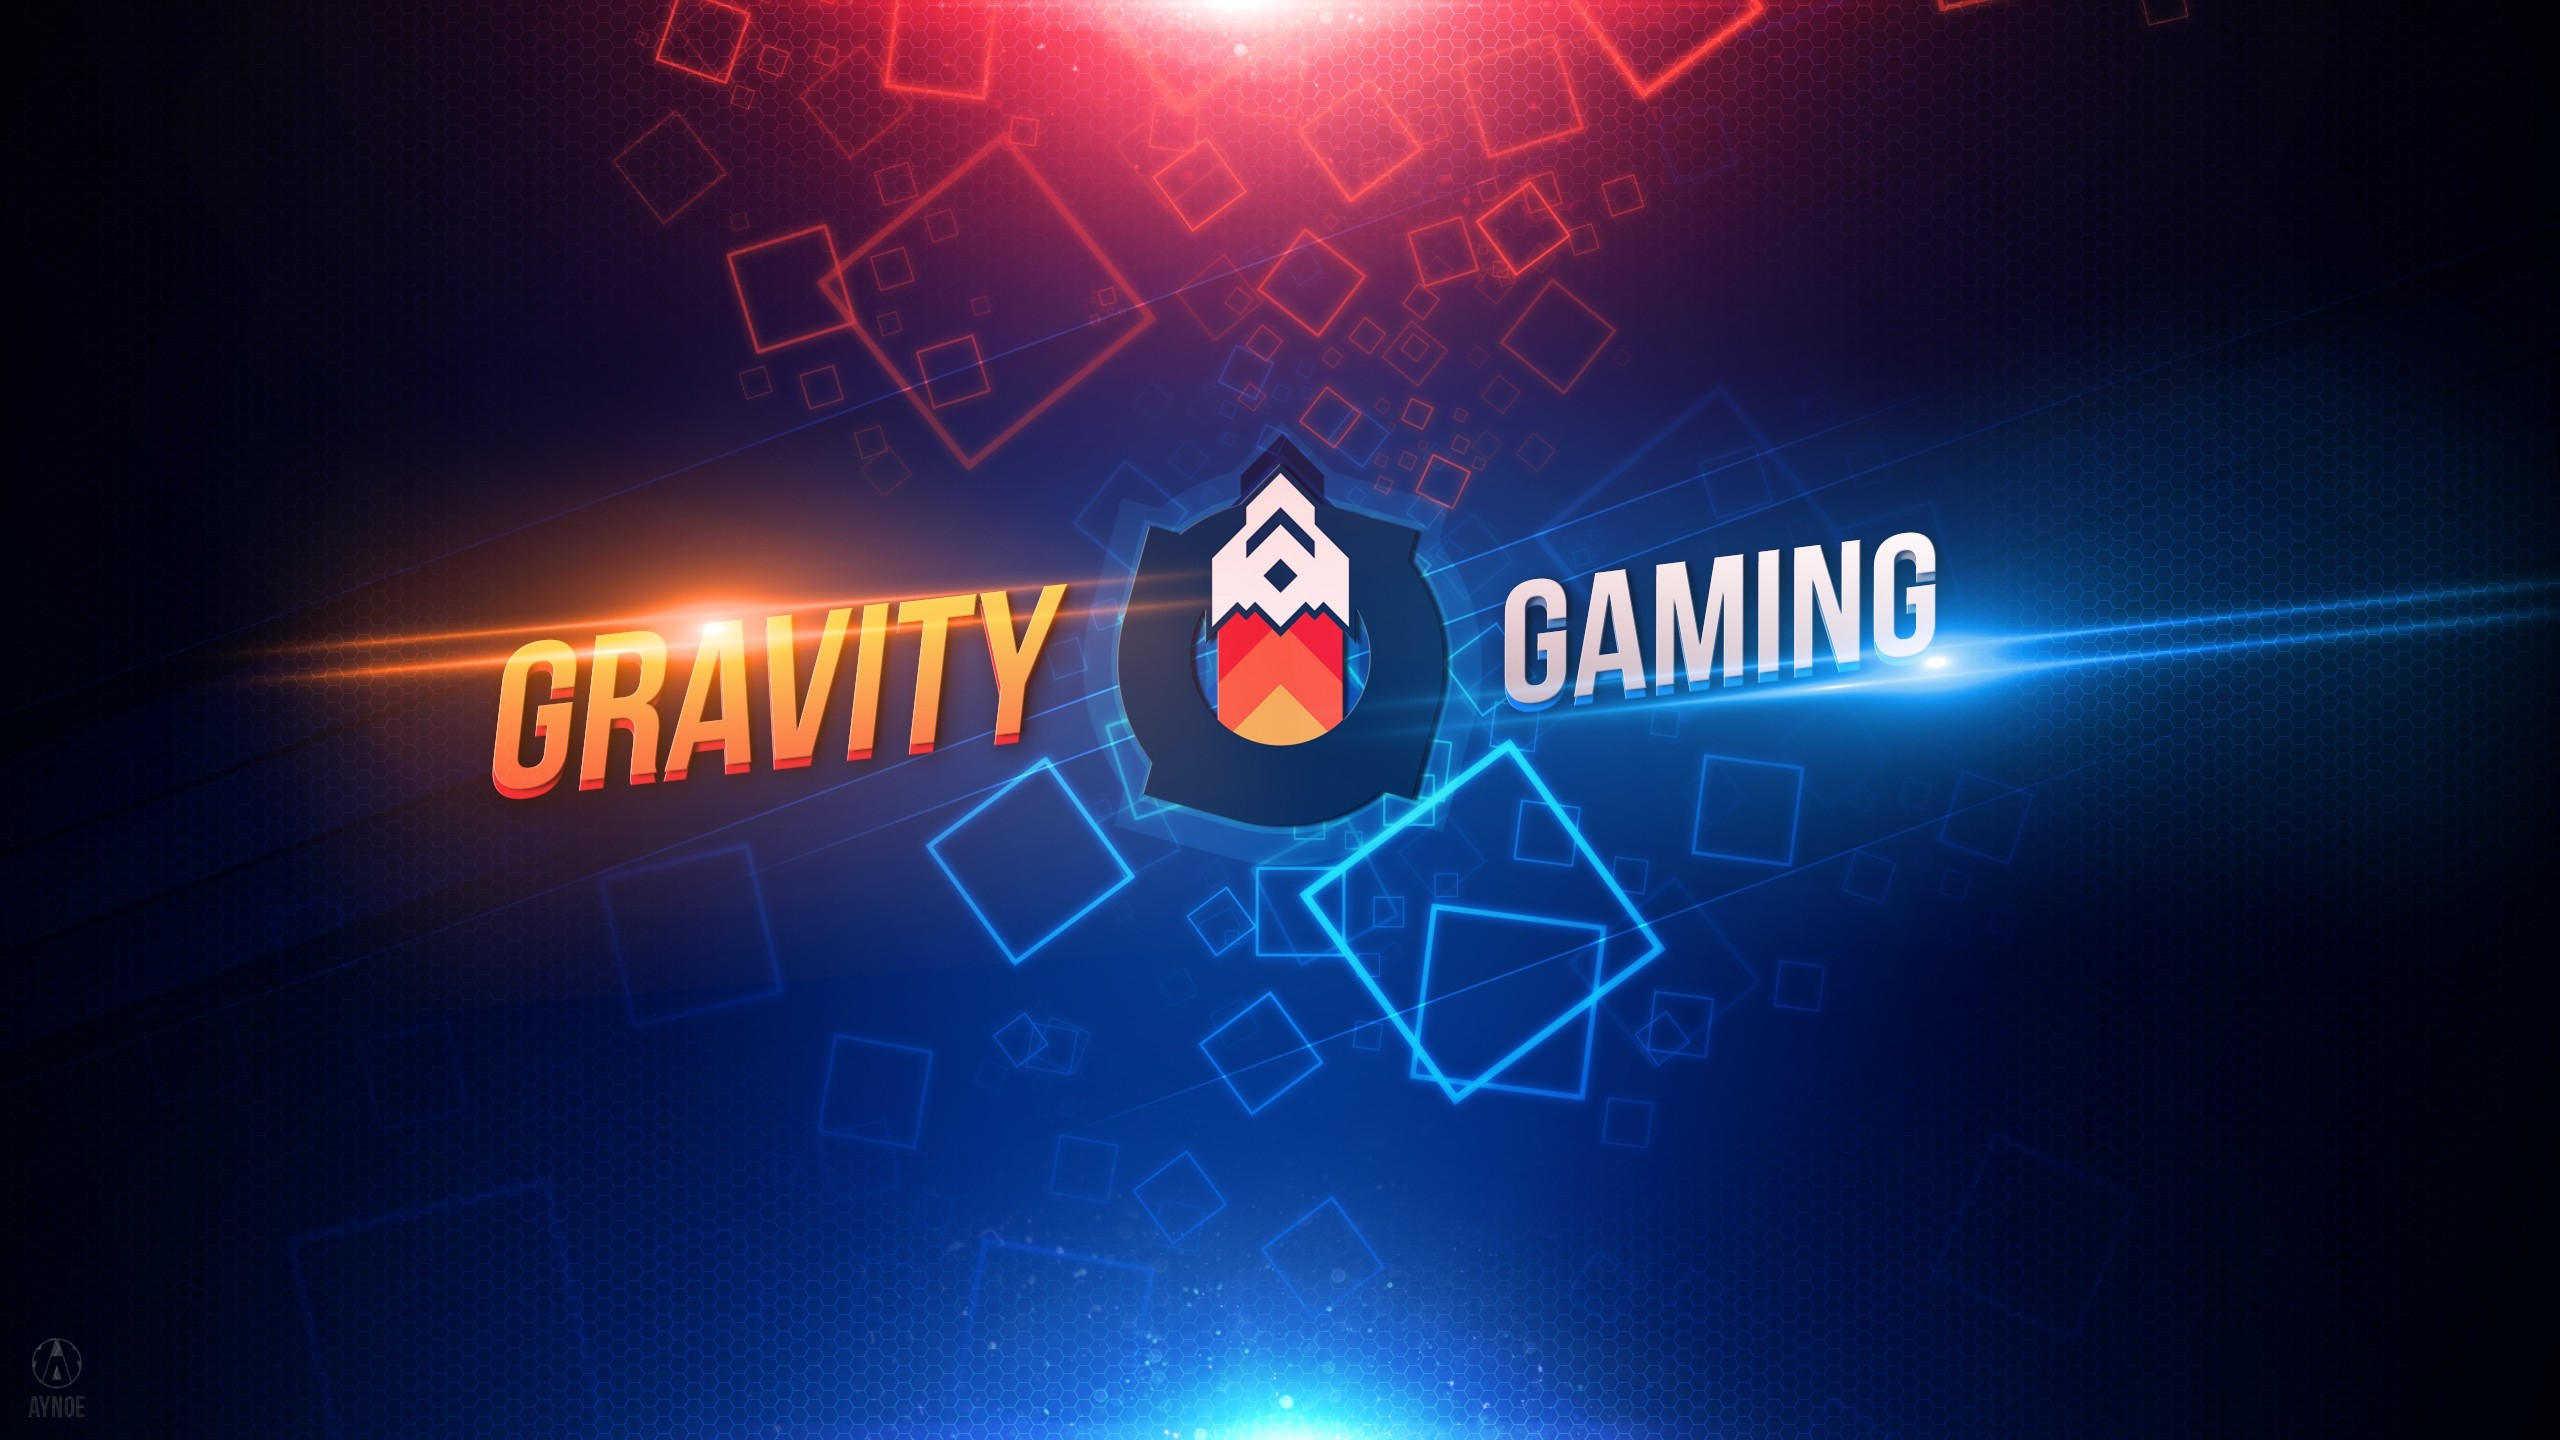 Gravity-gaming-wallpapers-logo-league-of-legends-001